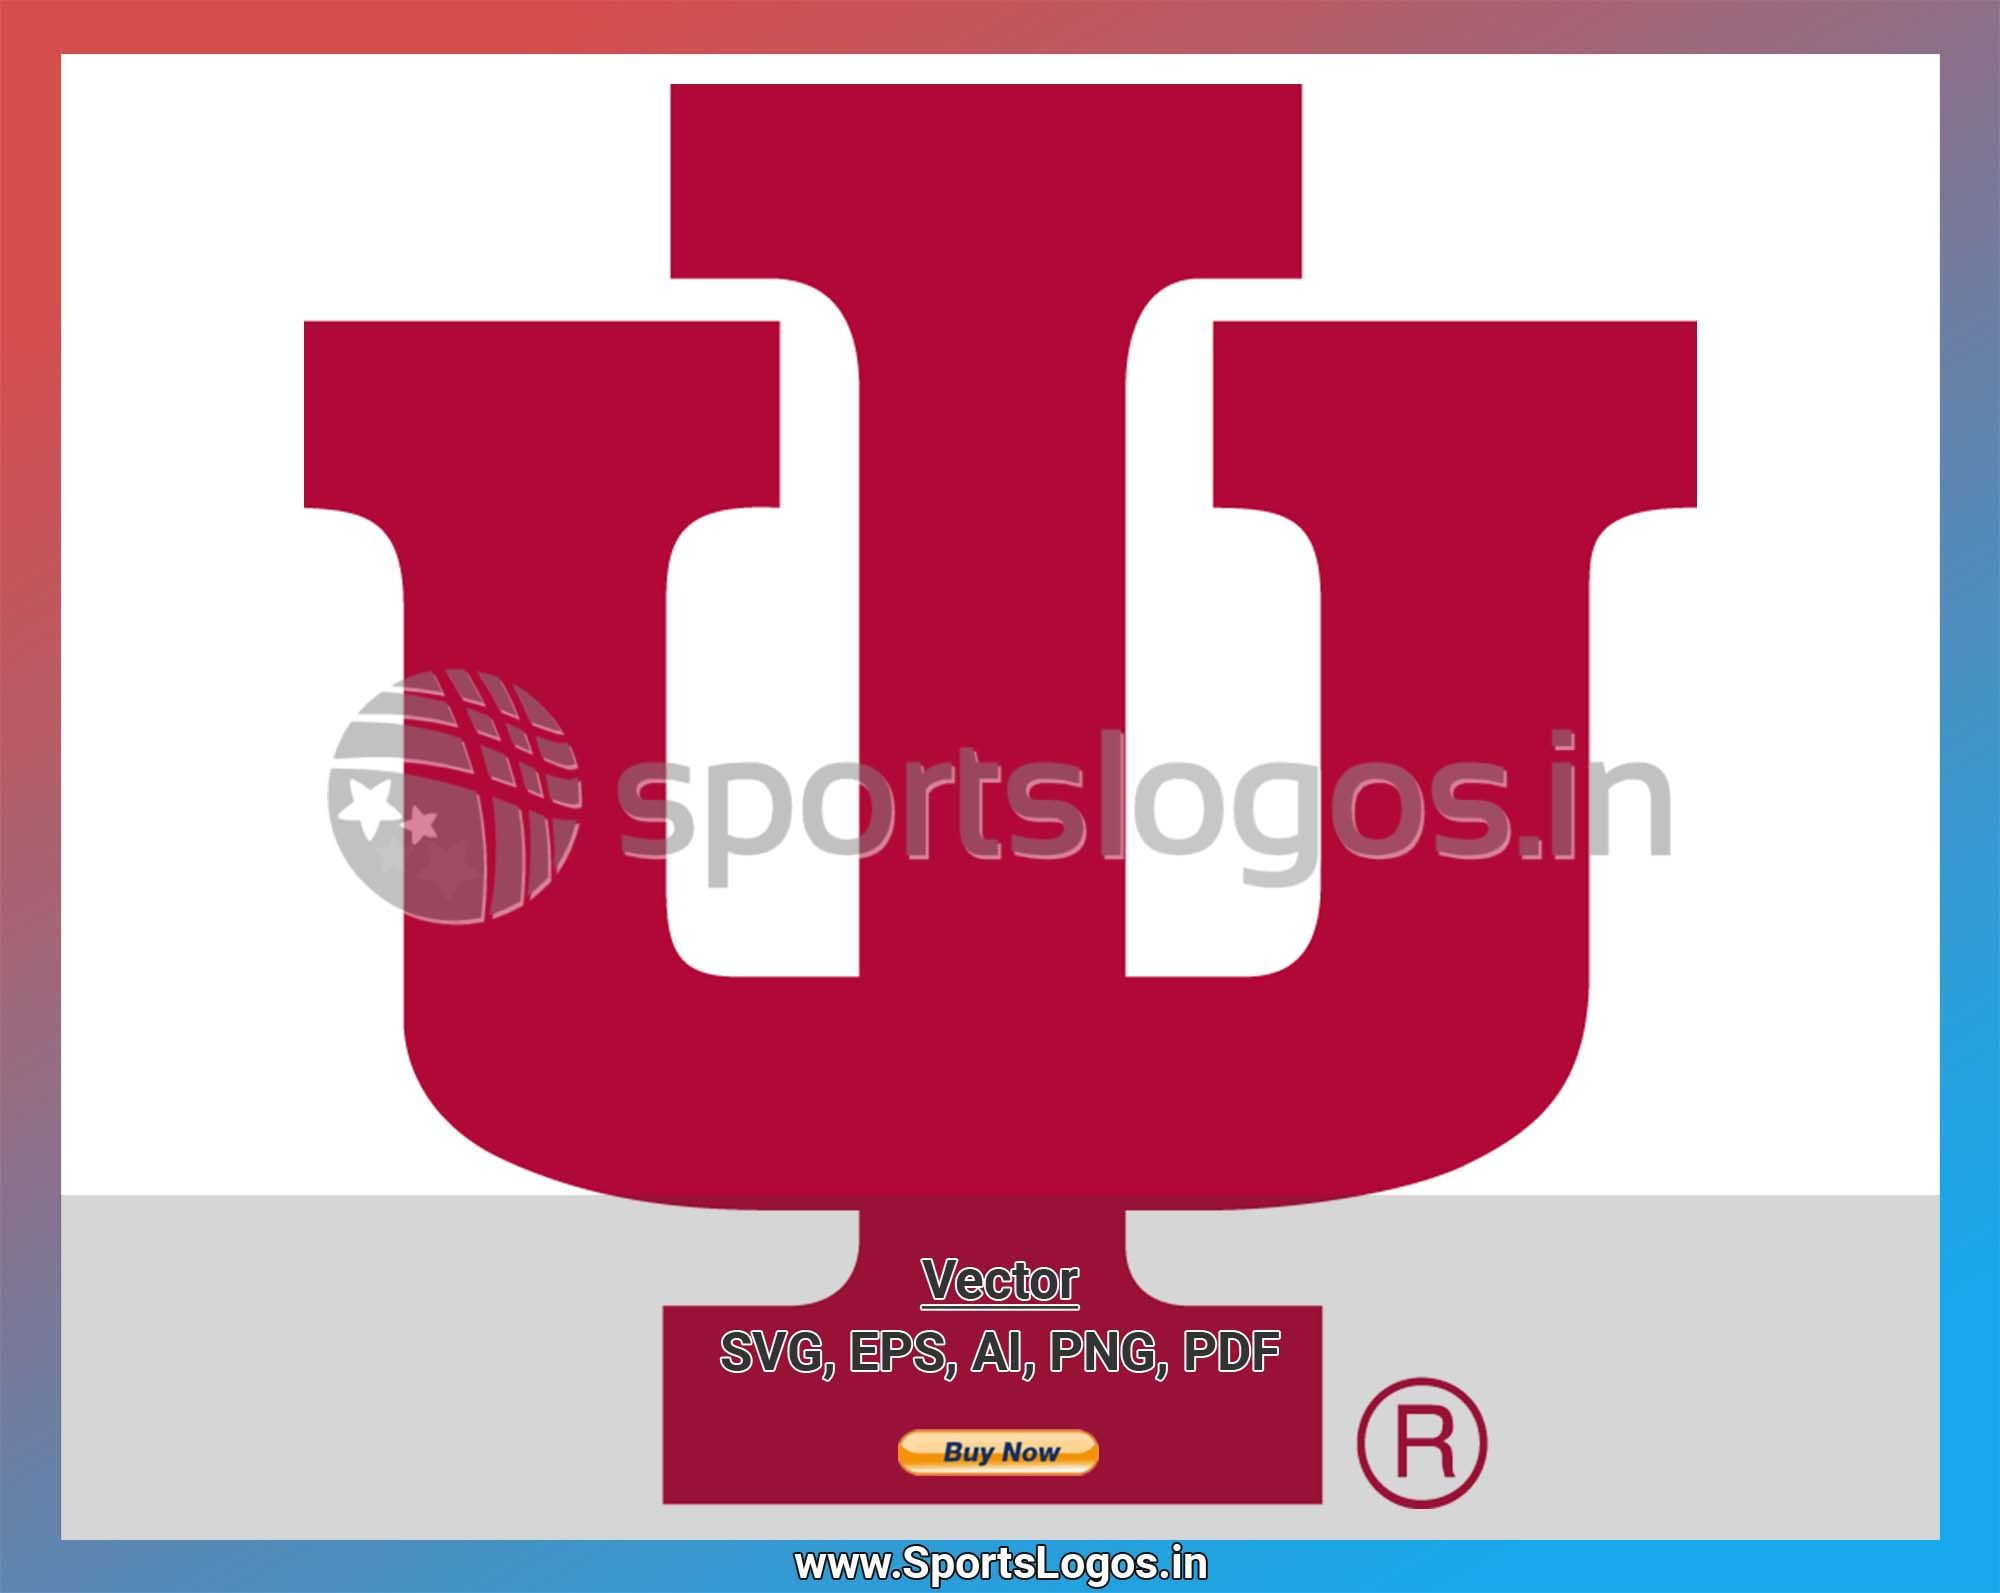 Indiana Hoosiers College Sports Vector Svg Logo In 5 Formats Spln001979 Sports Logos Embroidery Vector For Nfl Nba Nhl Mlb Milb And More In 2020 Embroidery Logo College Sports Sports Logo